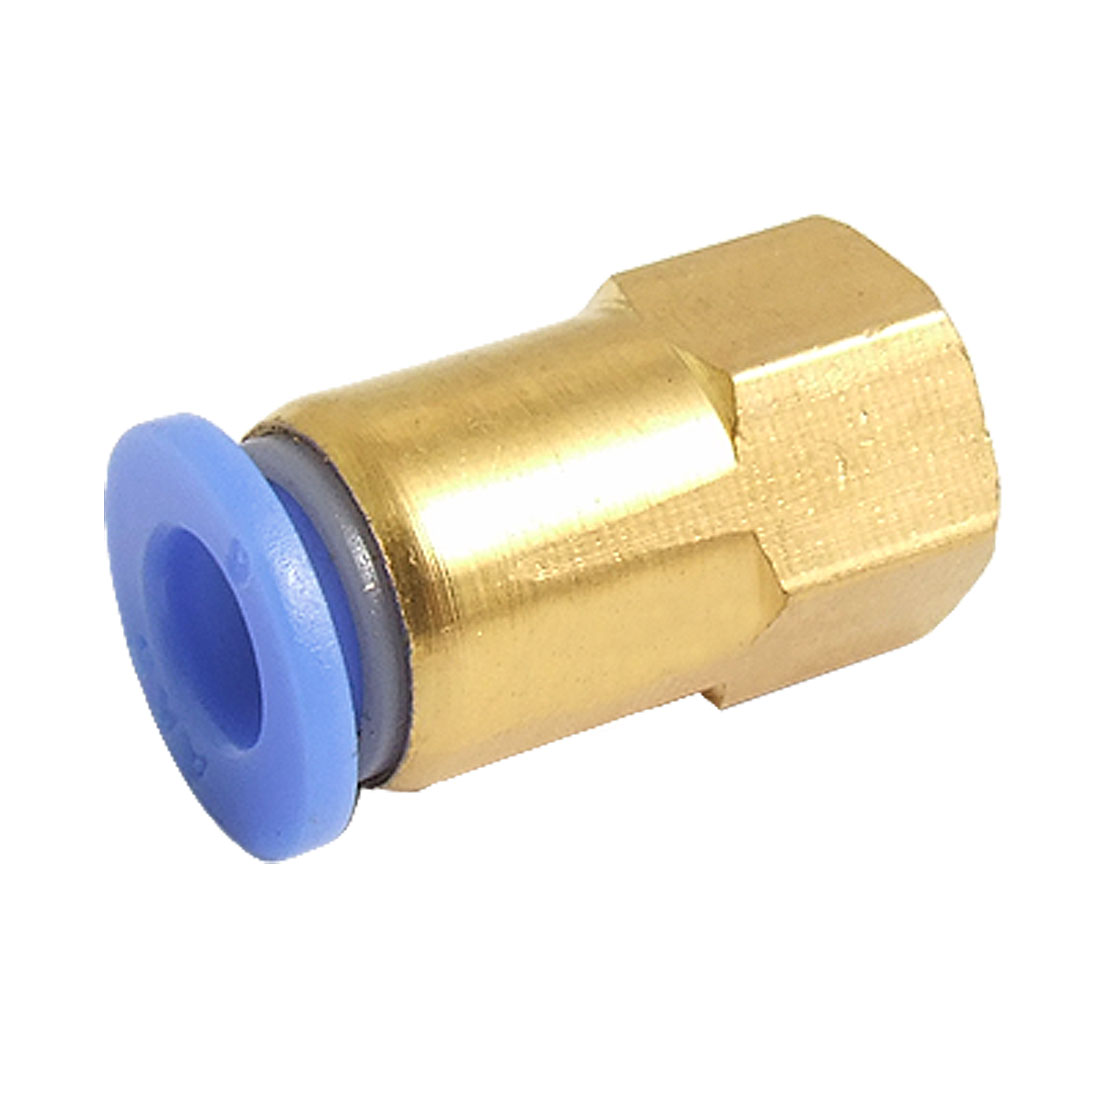 Pneumatic 10mm to 12mm Straight Push in Female Screw Connector